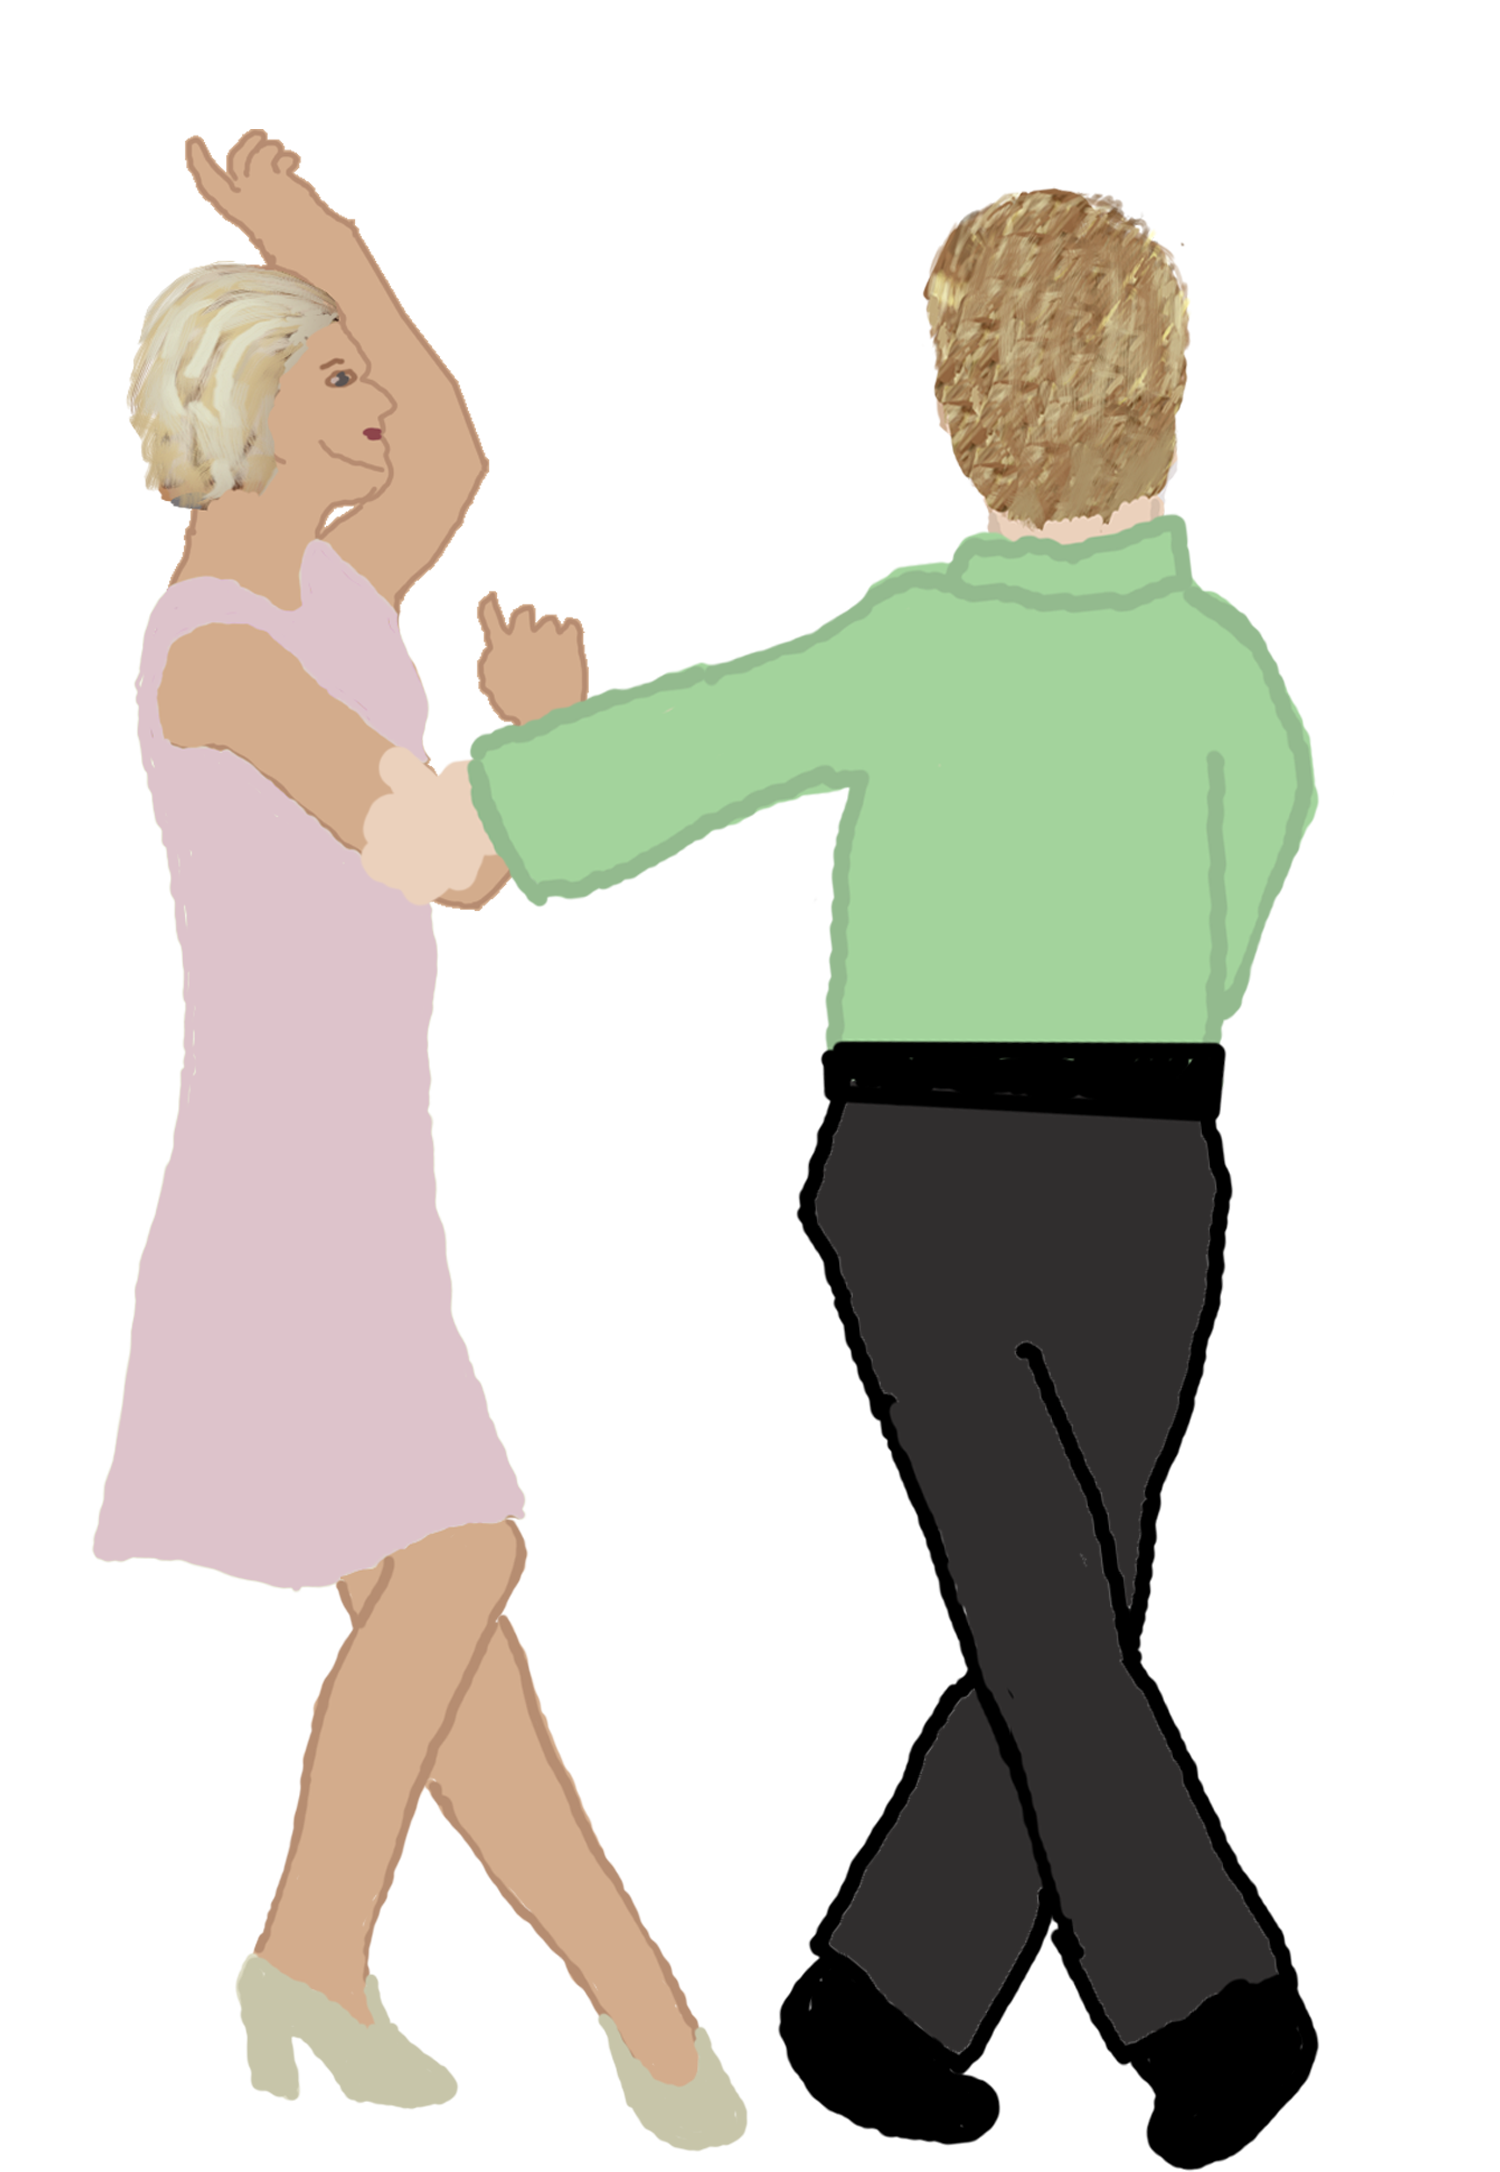 Too old to learn dancing or compete? | Dance Forums